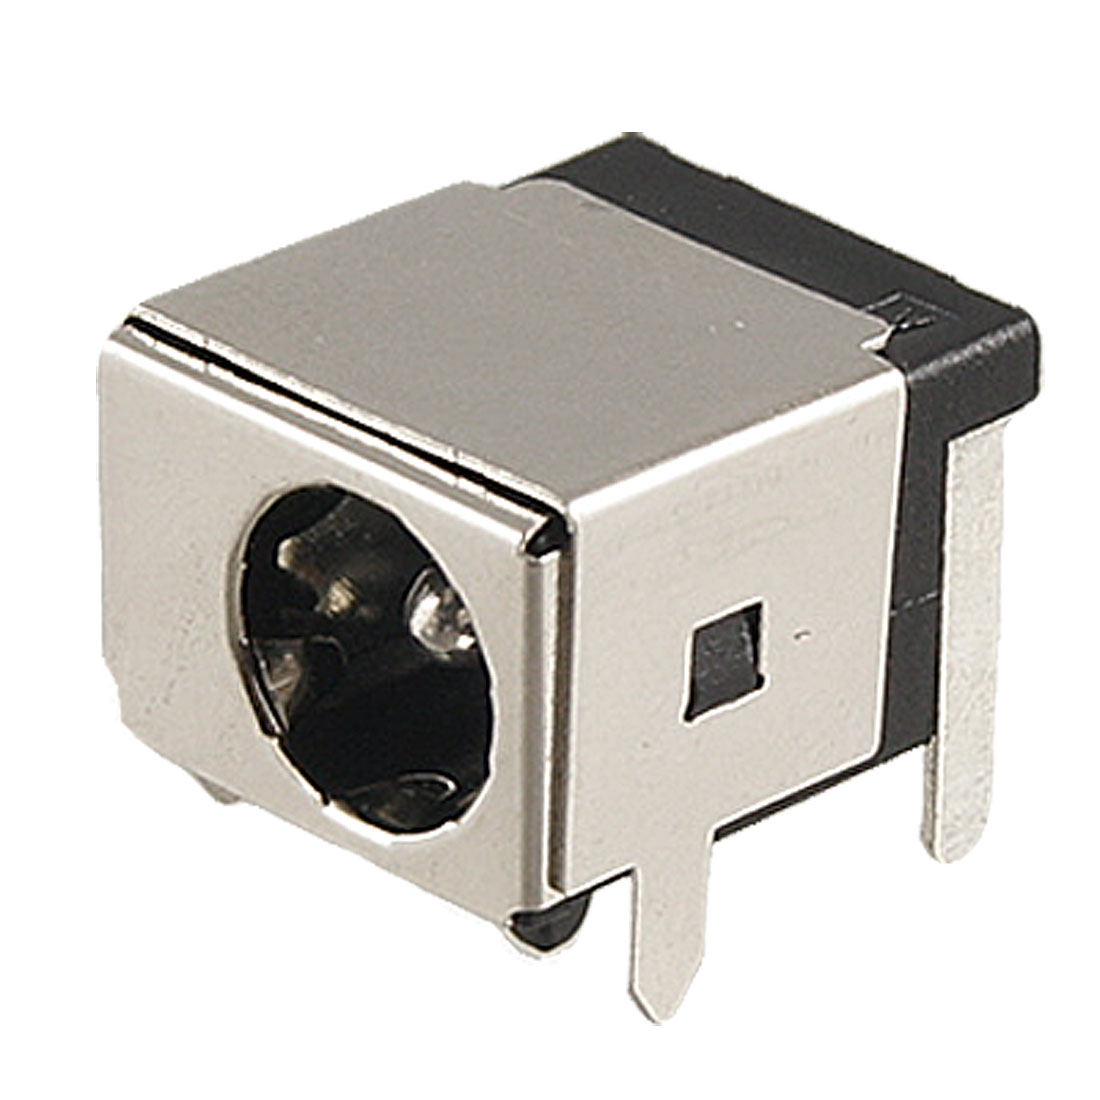 PJ003 DC Power Jack 1.65mm with Metal Shield for HP ZE2000 ZE2100 ZE2200